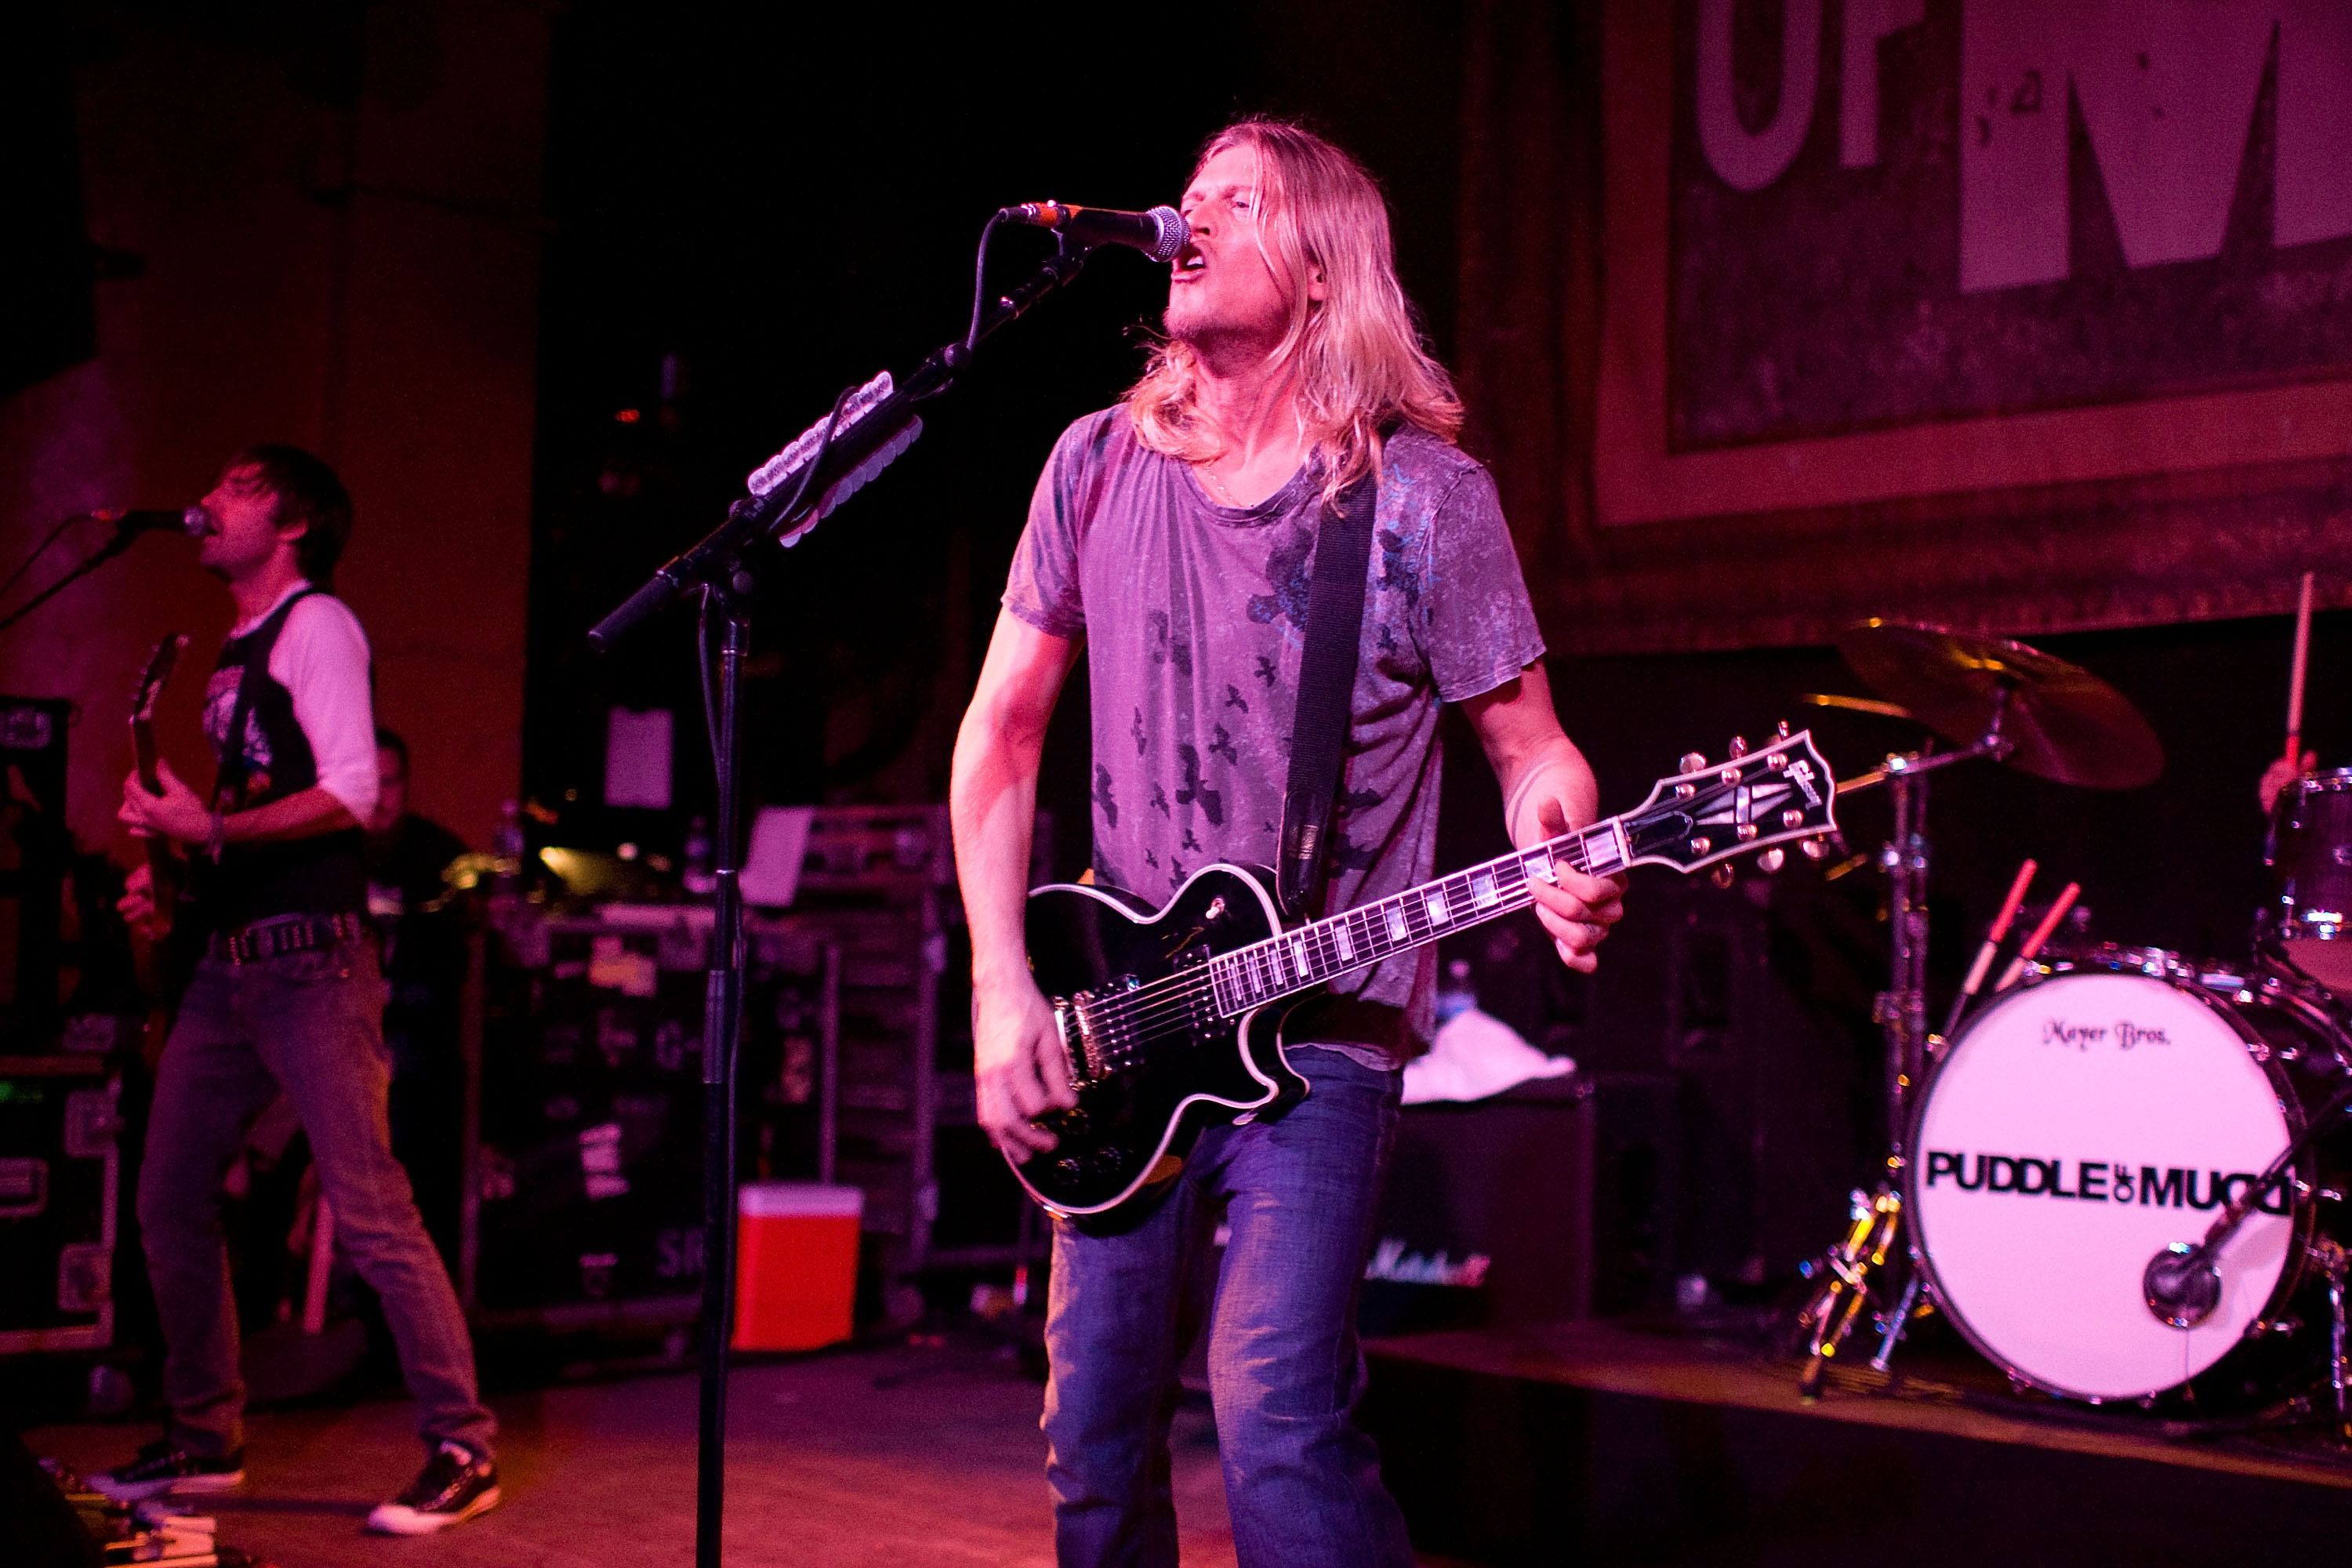 Wes Scantlin of Puddle Of Mudd performs live at The Vogue November 06, 2007 in Indianapolis, Indiana. (Photo by Joey Foley/Fi